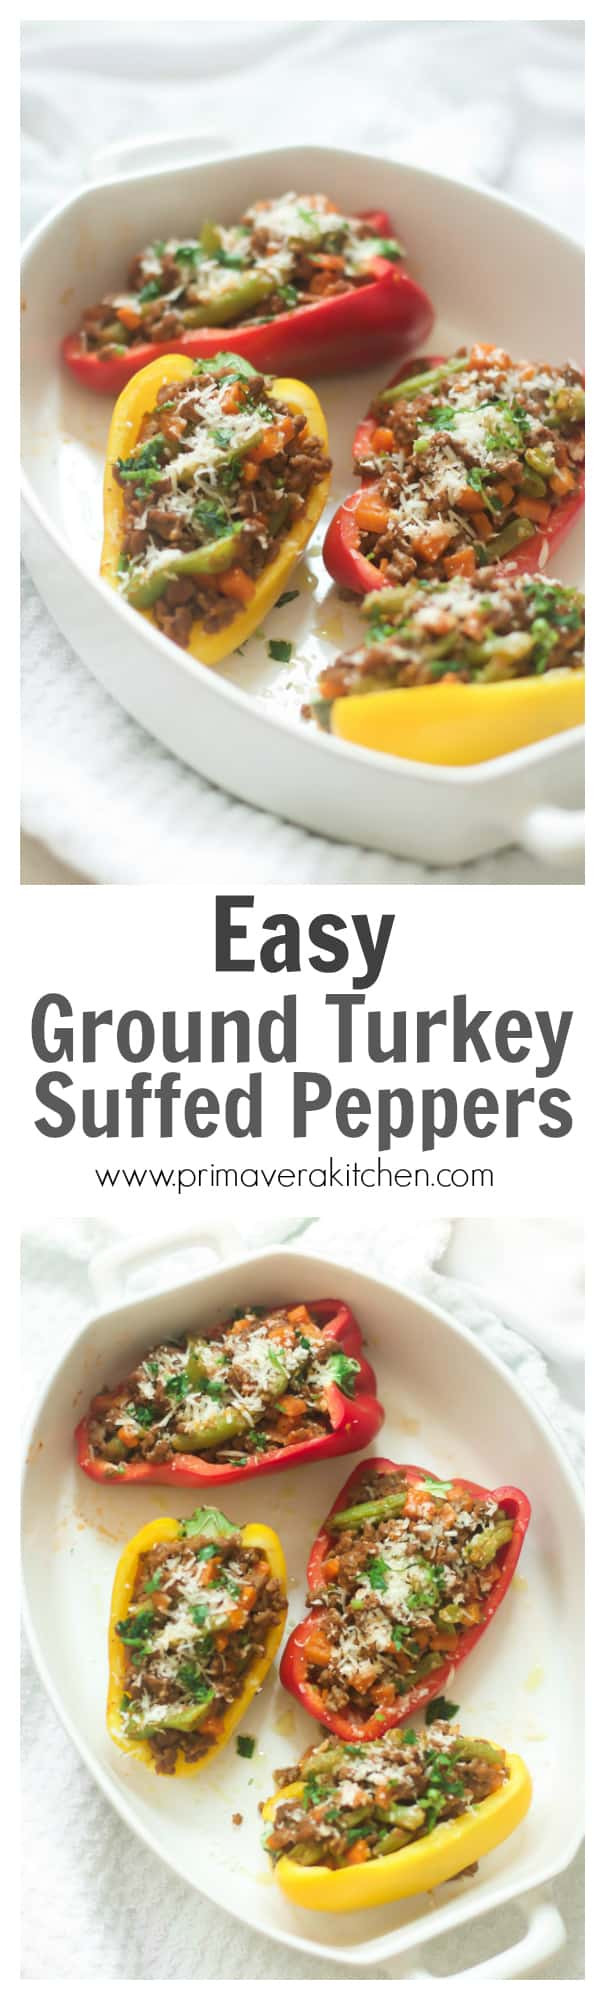 Low Carb Stuffed Peppers With Ground Turkey  Easy Ground Turkey Stuffed Peppers Primavera Kitchen